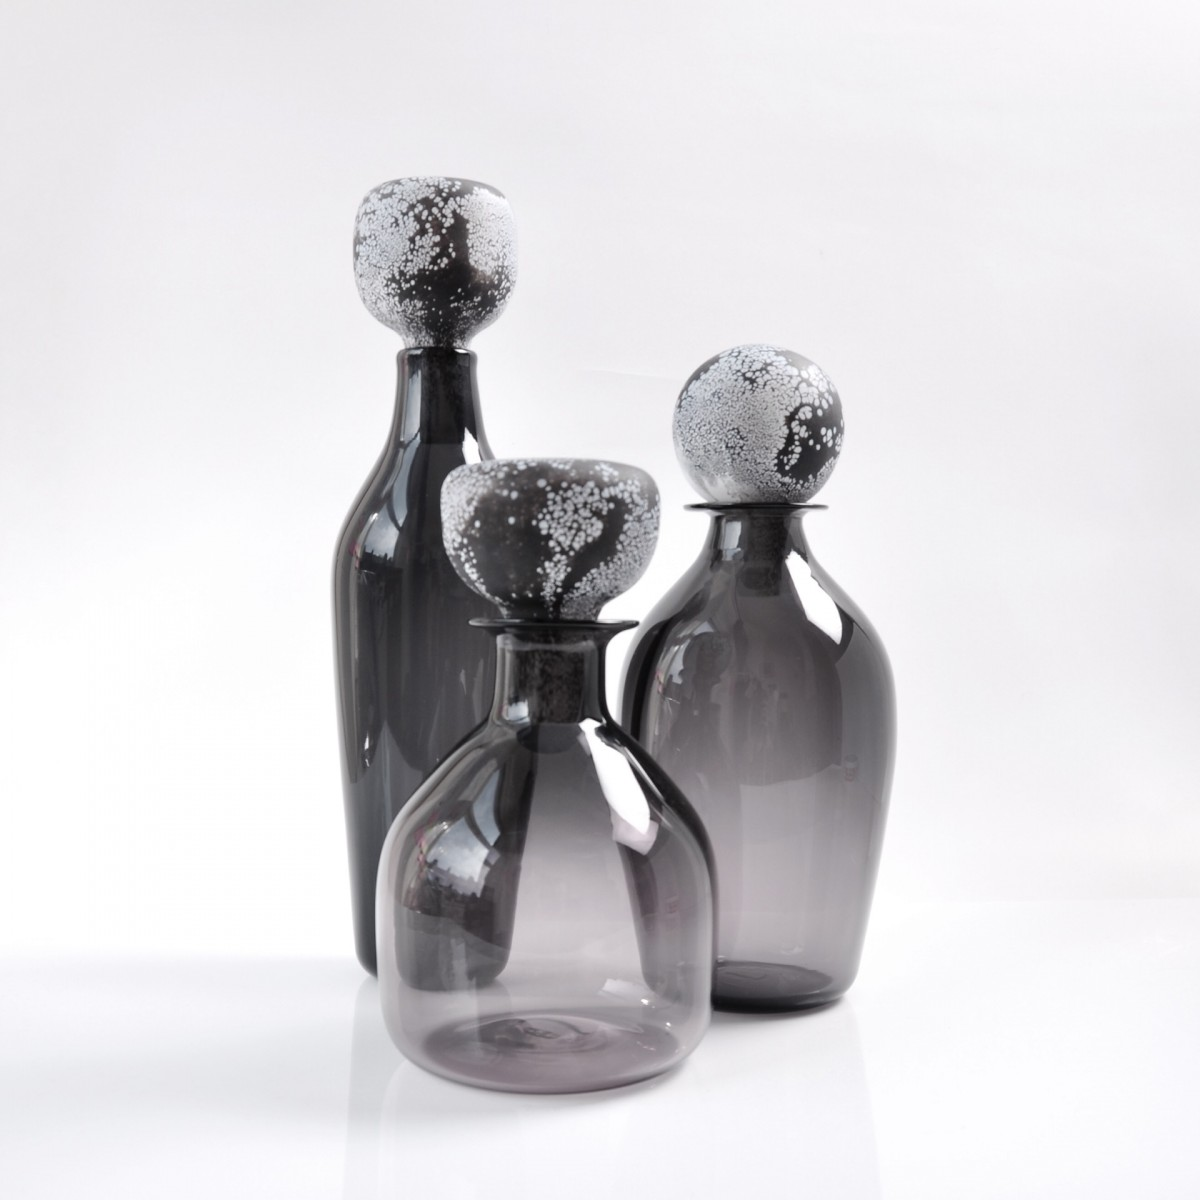 Three grey glass bottles with black and white patterned stoppers